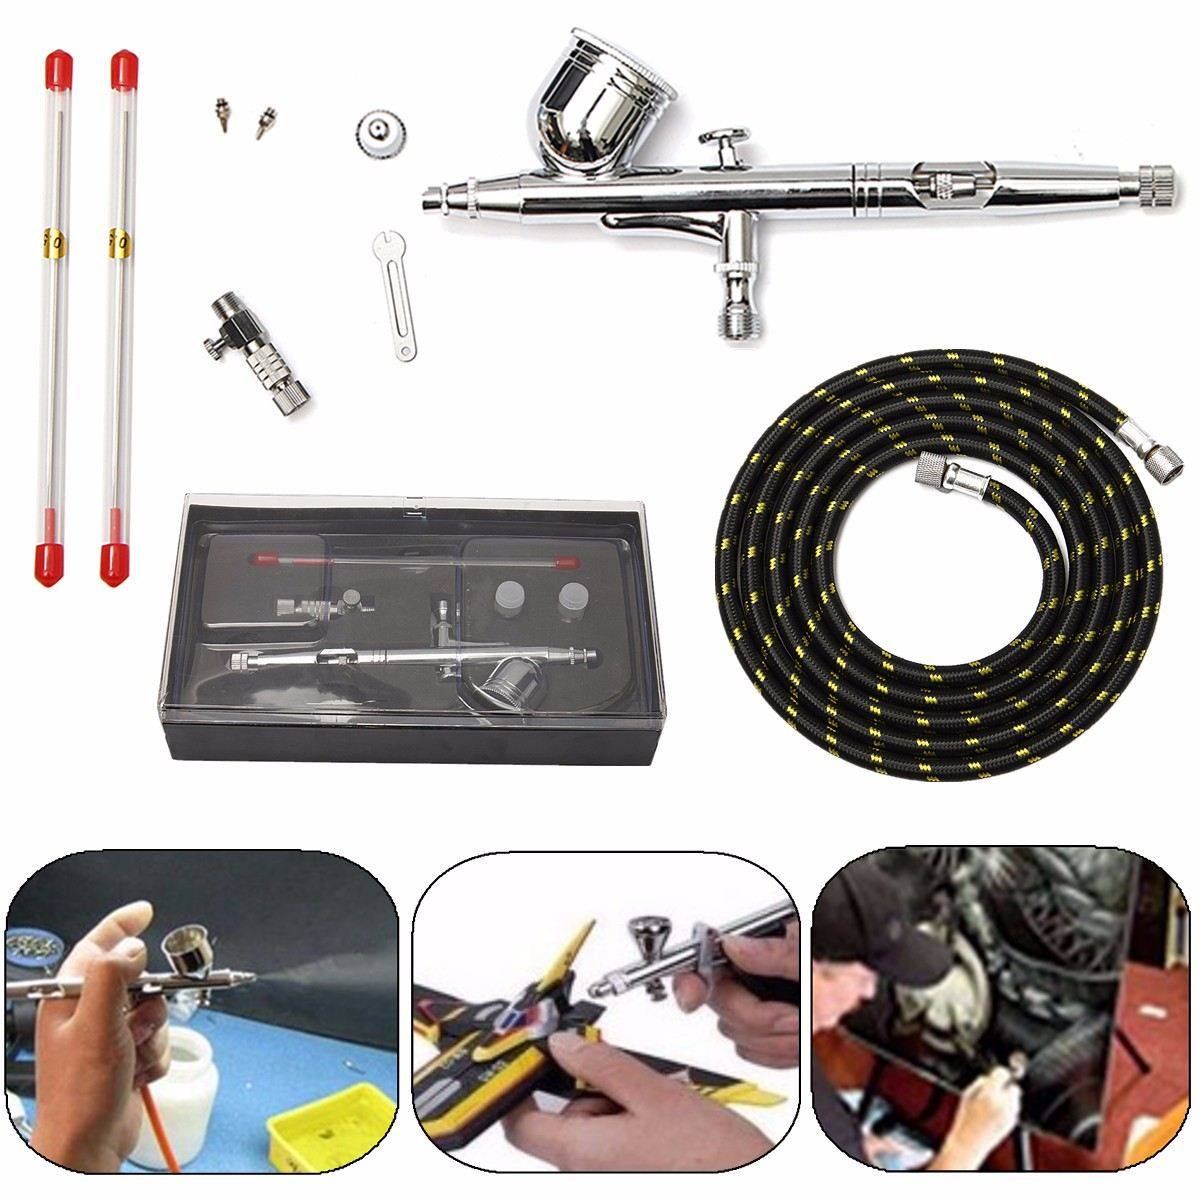 MASTER PRO Spray gun Dual-Action Gravity Feed Airbrush Kit Tips Hobby Paint Craft